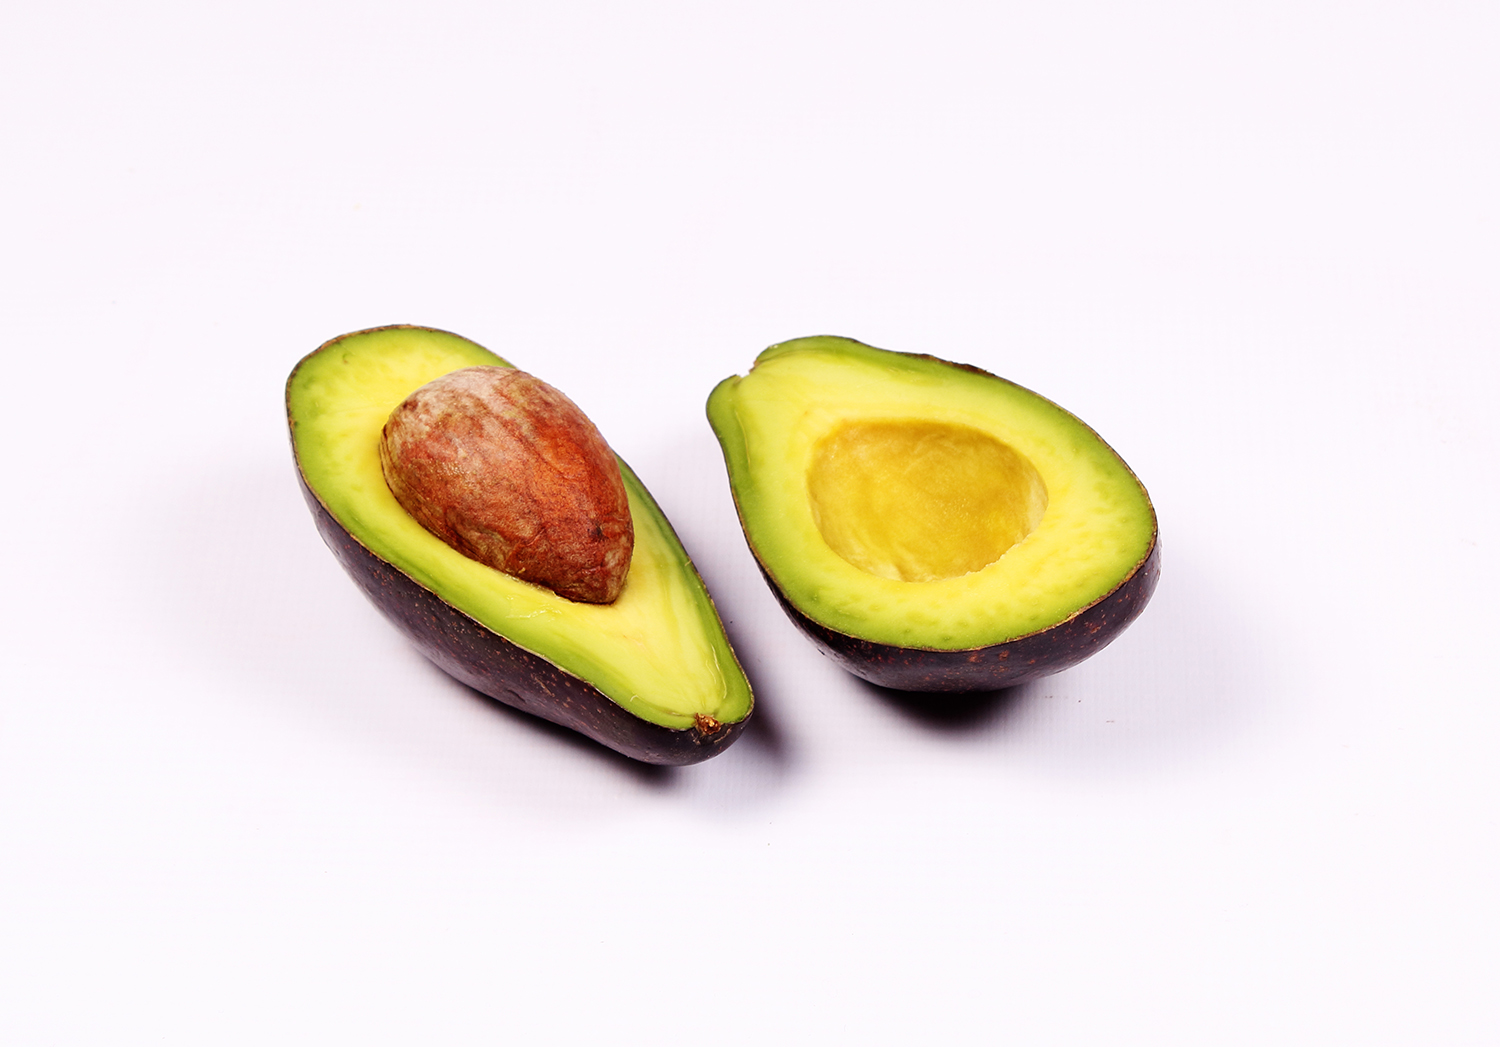 Two slices of avocados